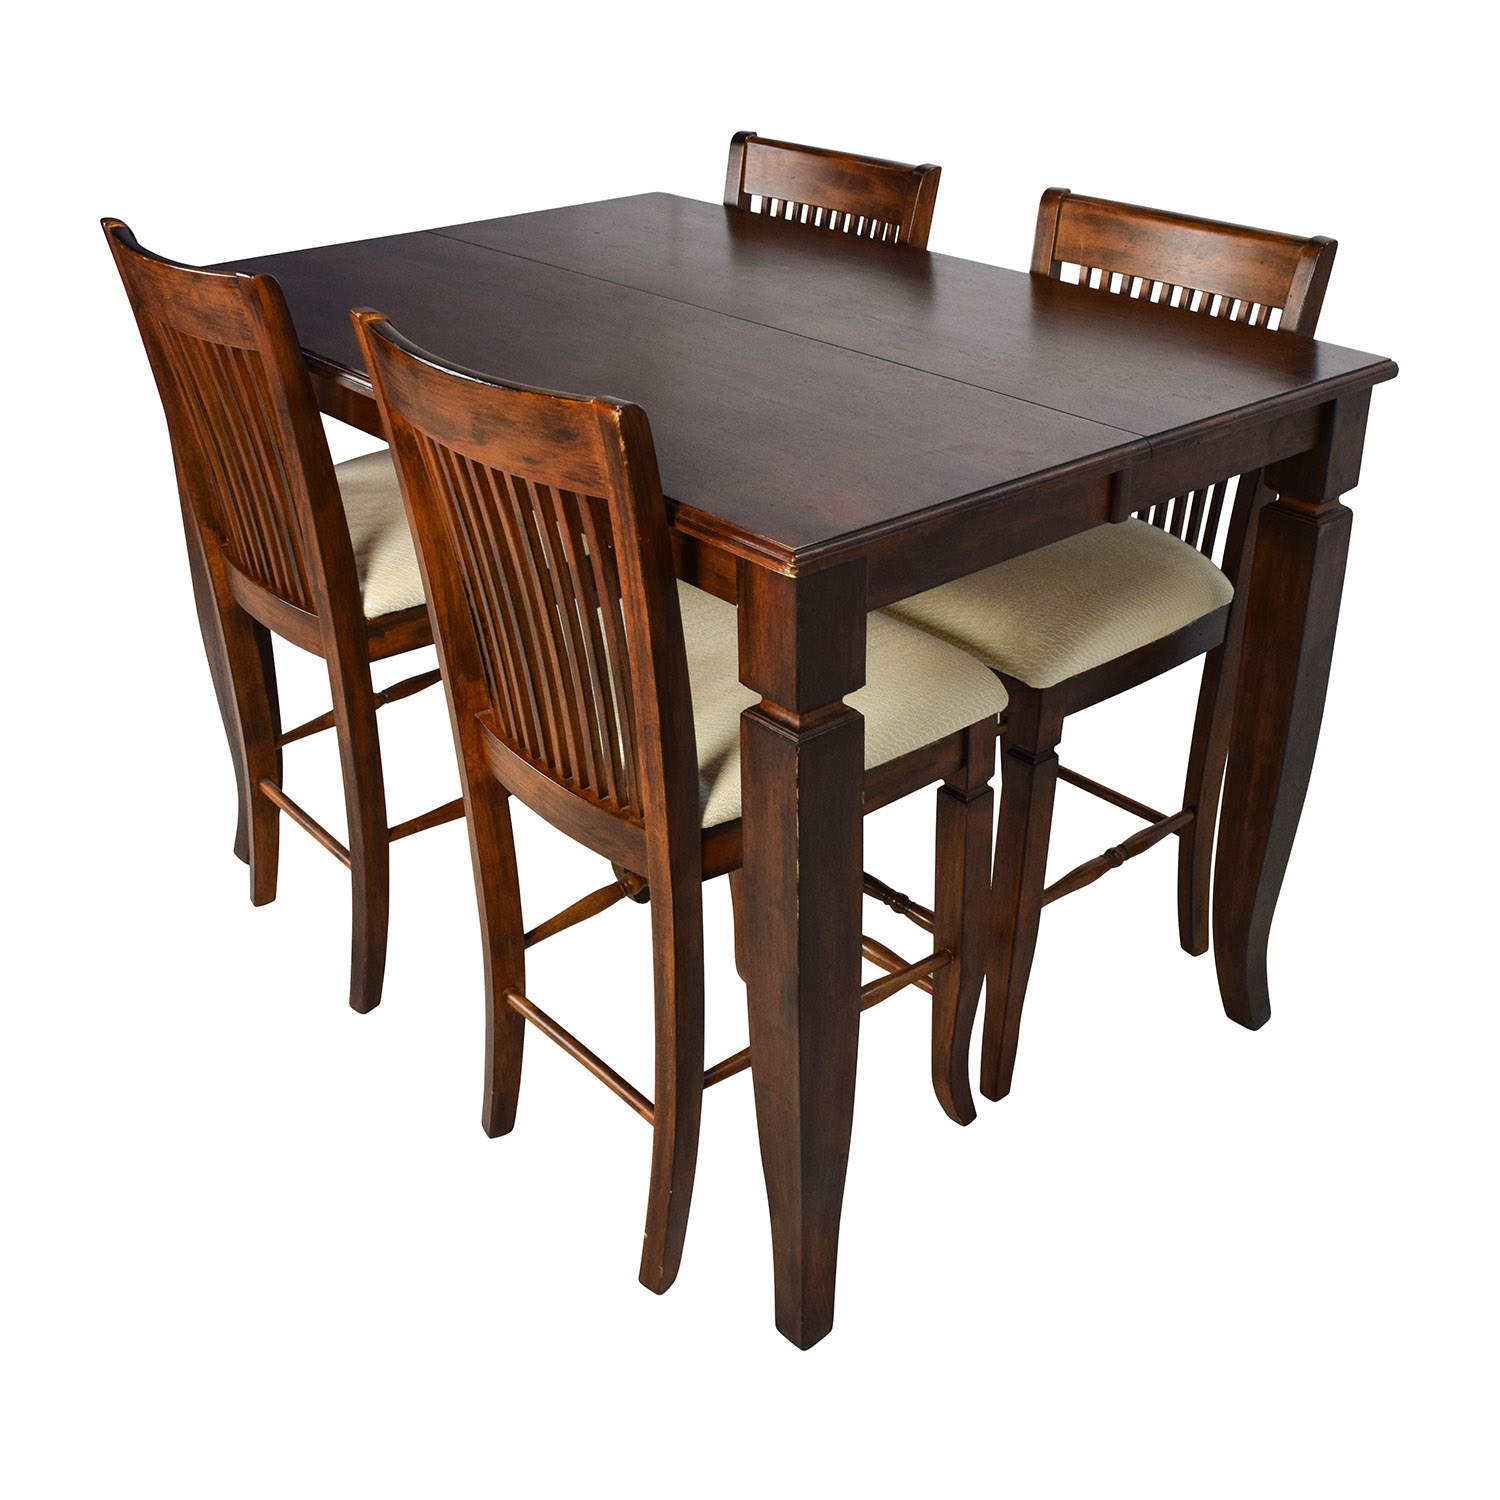 Tall Dining Table Of 75 Off Tall Extendable Dining Room Table Set Tables